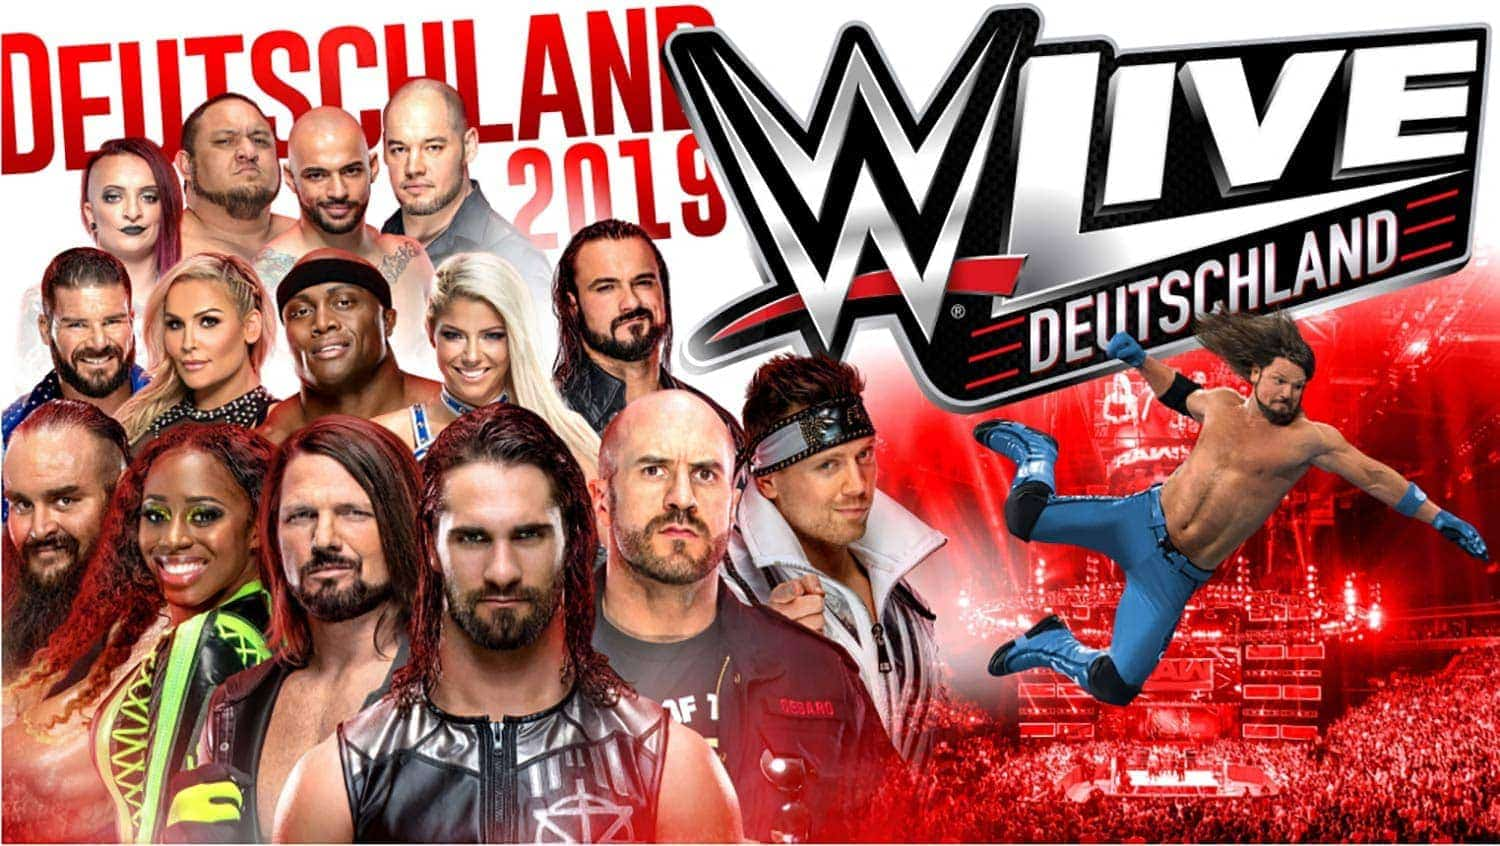 WWE LIVE in Regensburg Action und Entertainment beim Wrestling Event der Superlative